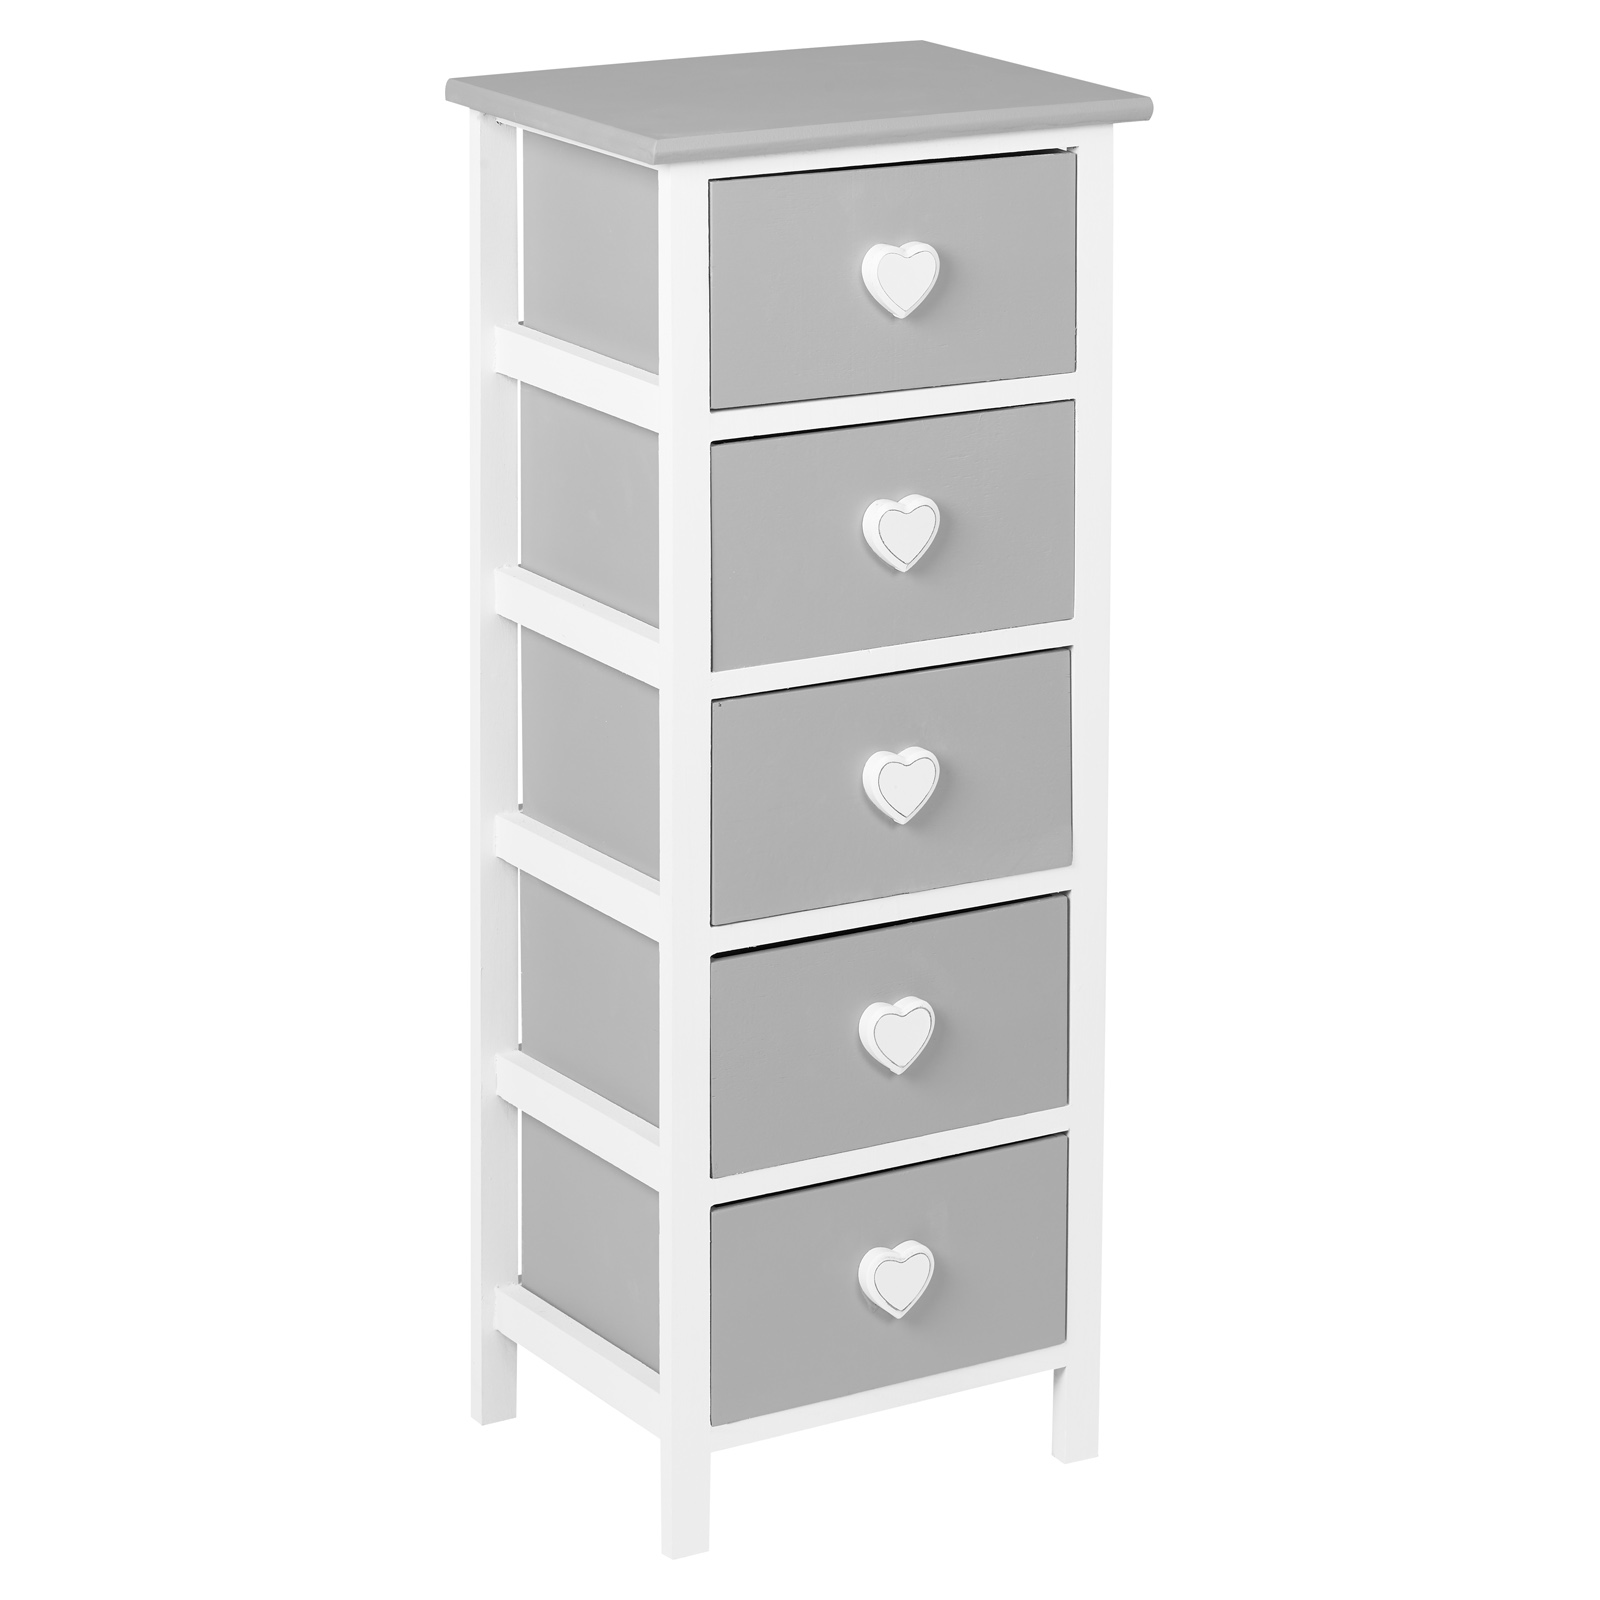 Details About Hartleys White Grey 5 Drawer Heart Storage Unit Chest Of Drawers S Bedroom